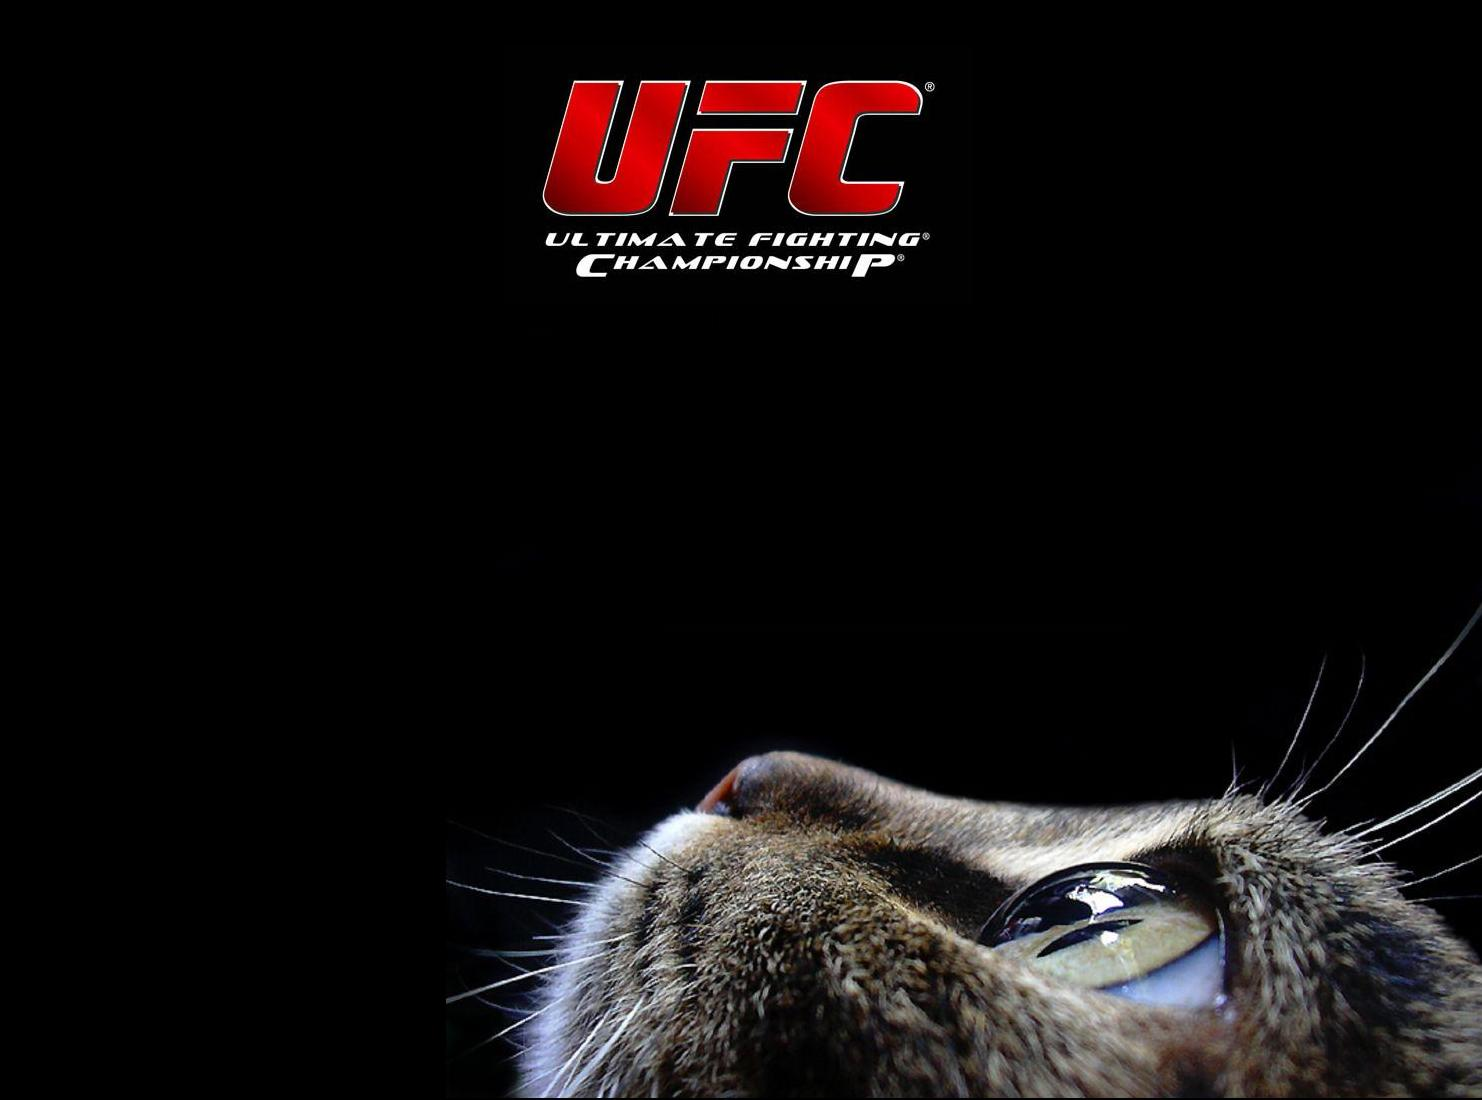 ufc ultimate fighting championship logo title cat mma mixed martial 1482x1100